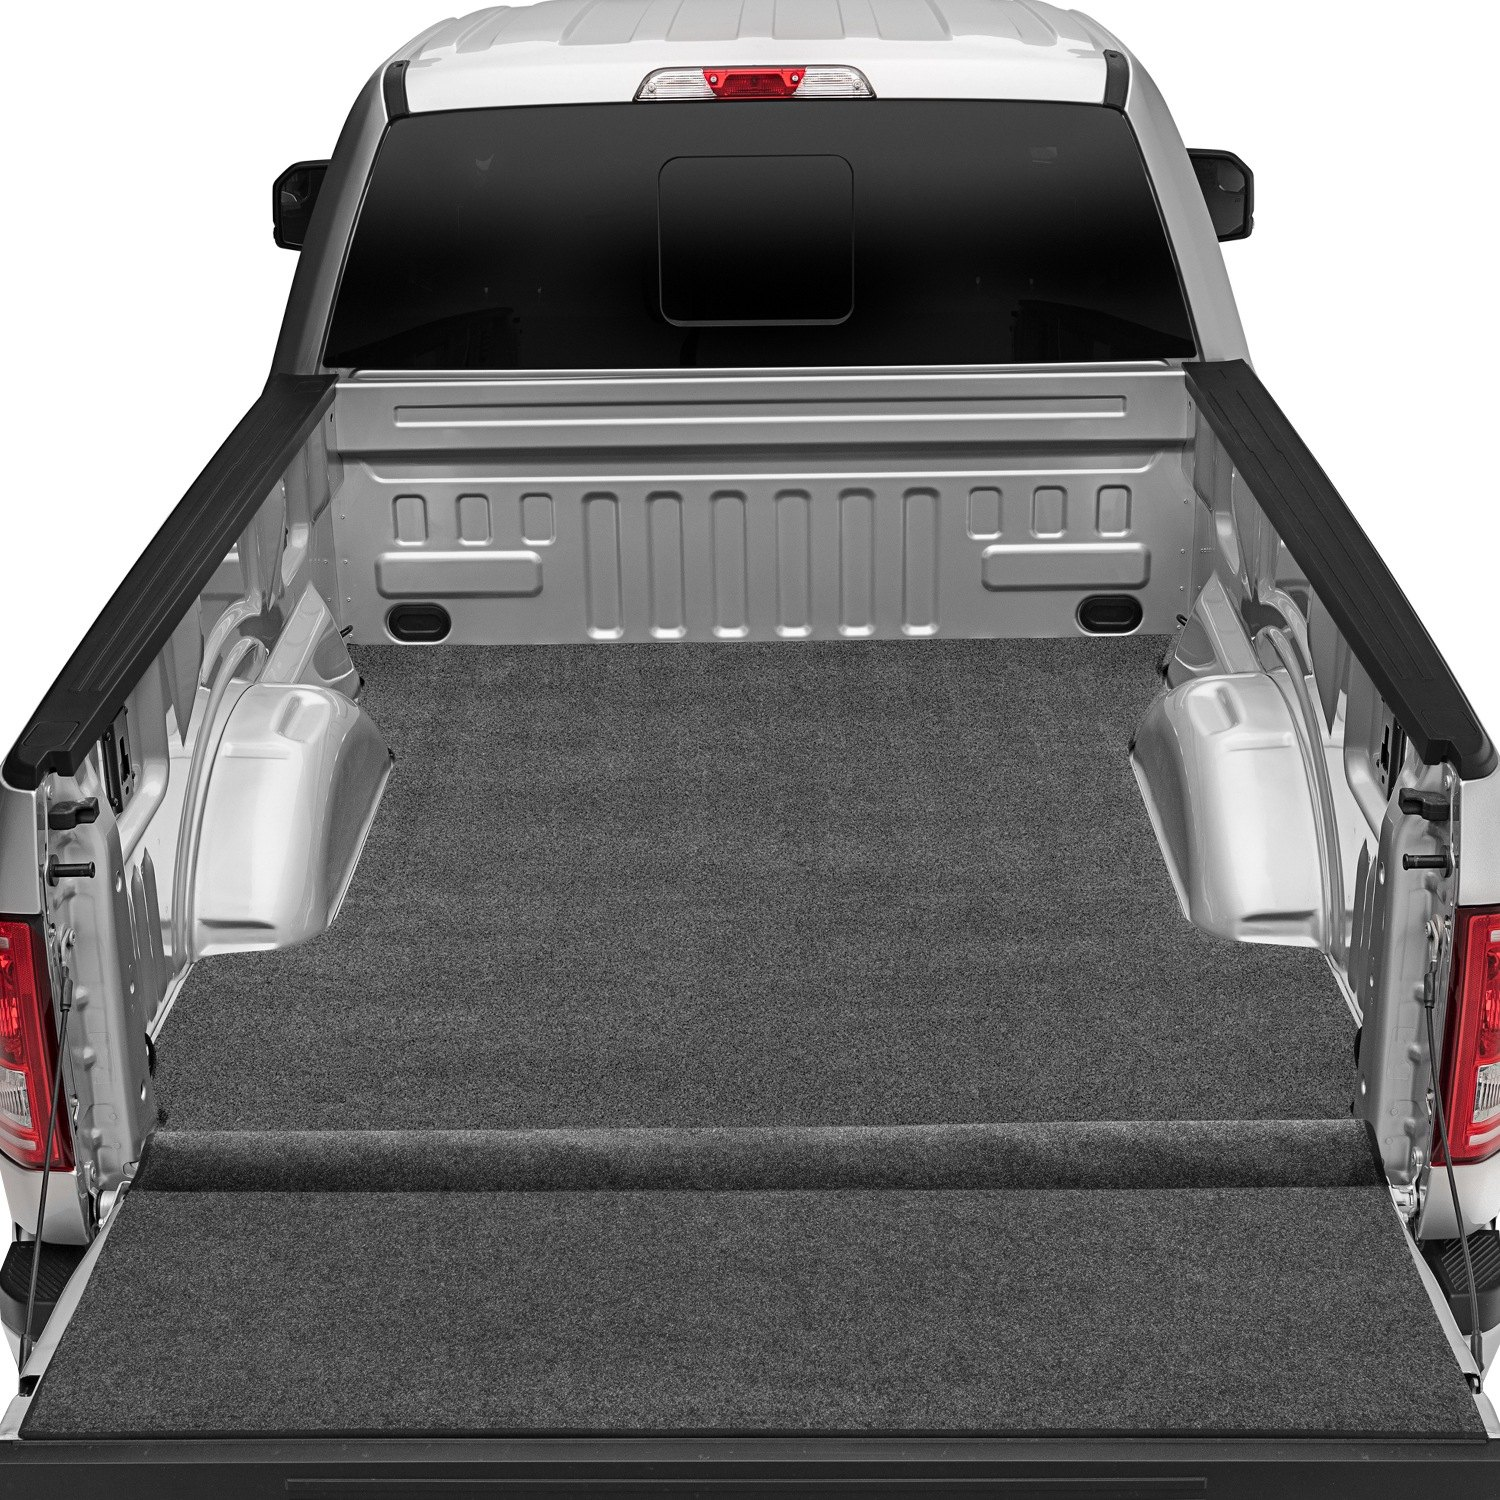 buy cheap BedRug® XLTBMT02SBS - XLT Bed Mat for Non or Spray-In Liner for 2015 RAM 1500 TRUCK Ebay & Amazon